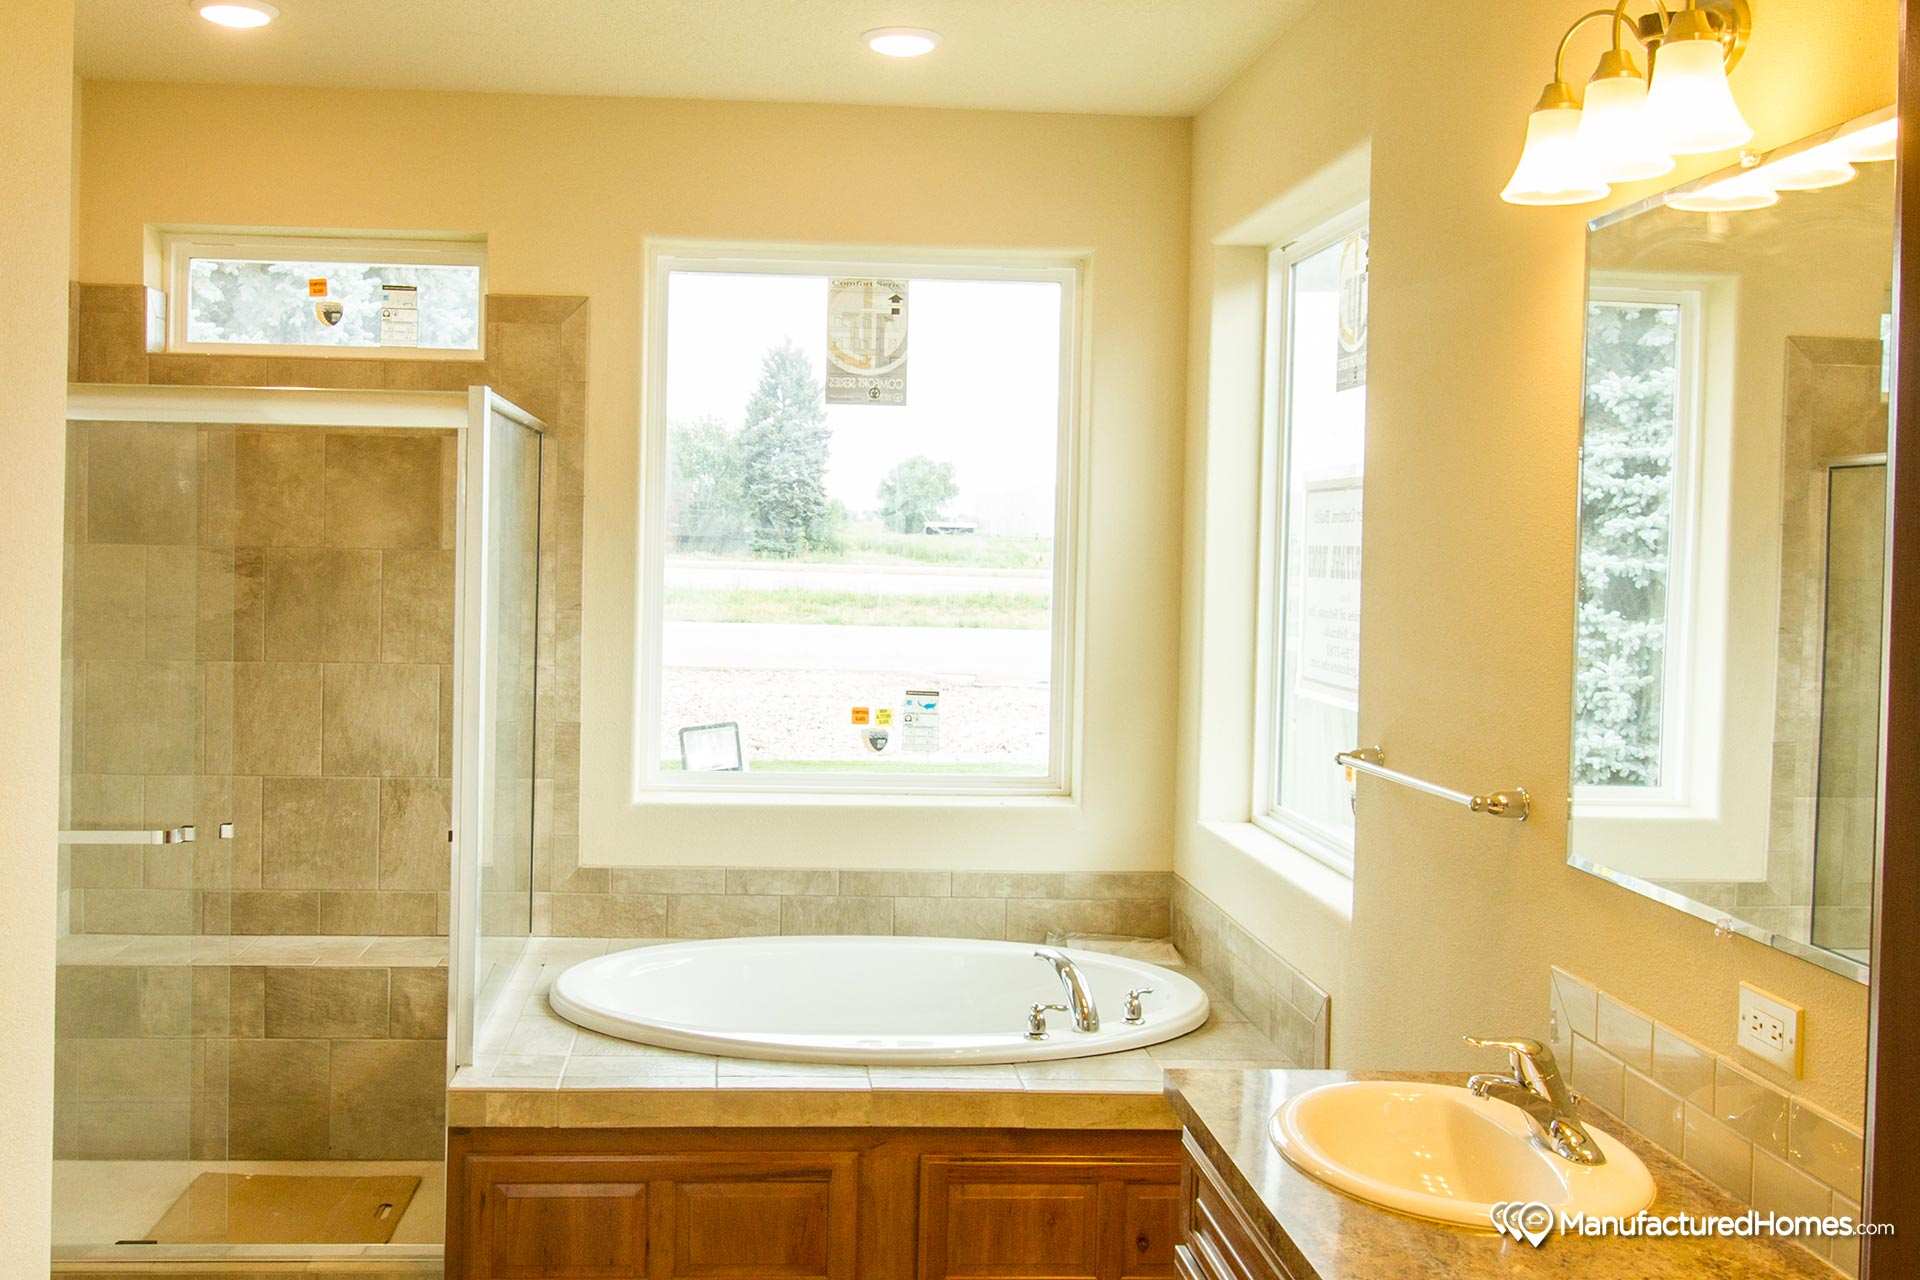 Alpine Homes In Fort Collins Co Manufactured Home And